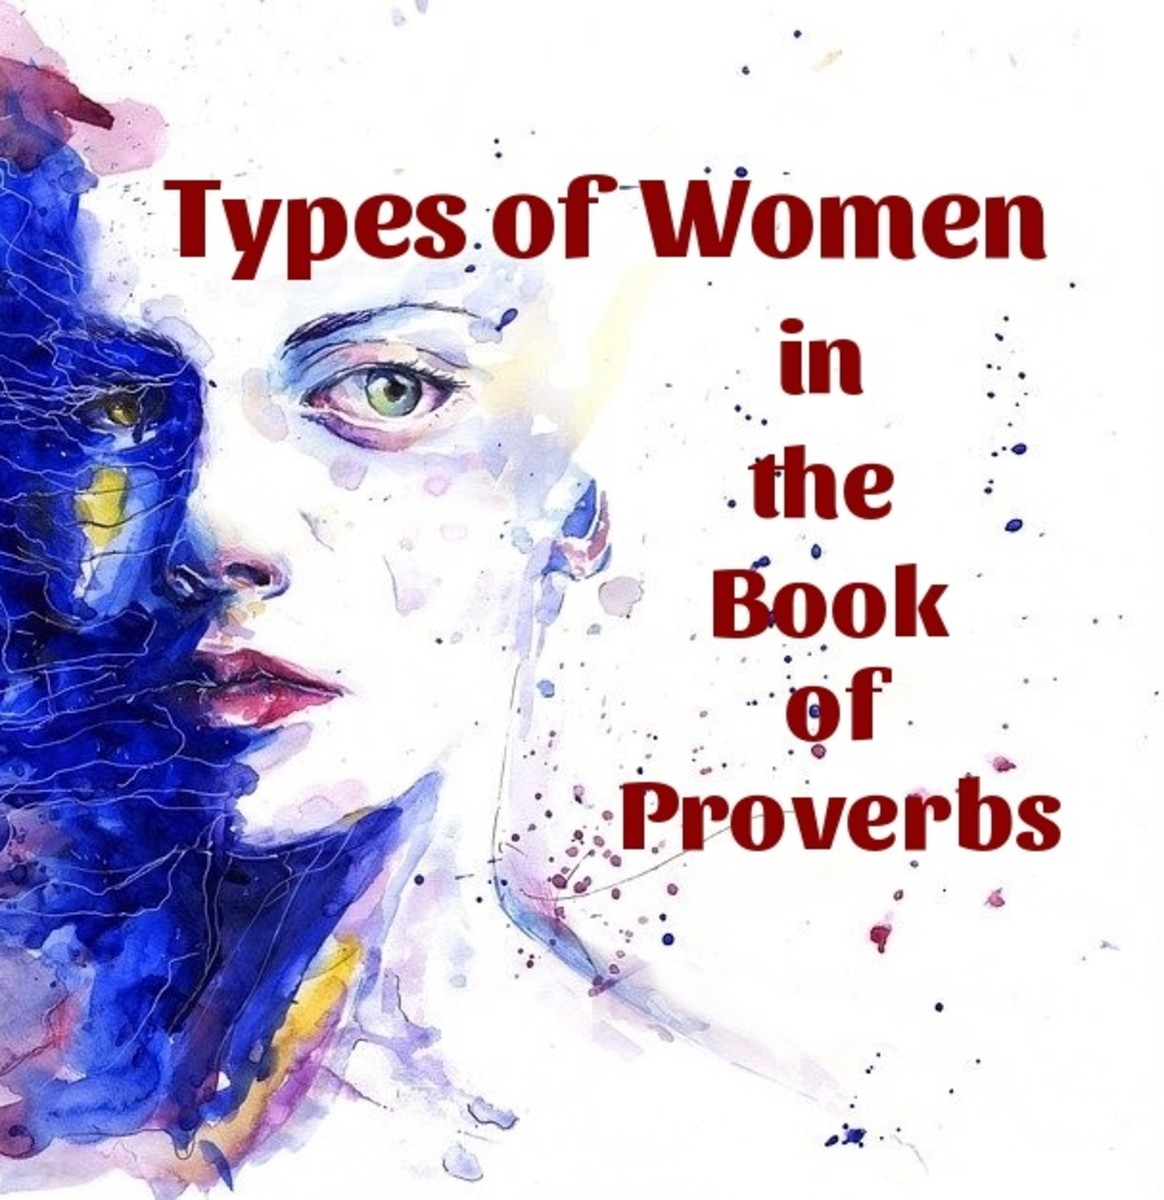 Types of Women in the Book of  Proverbs